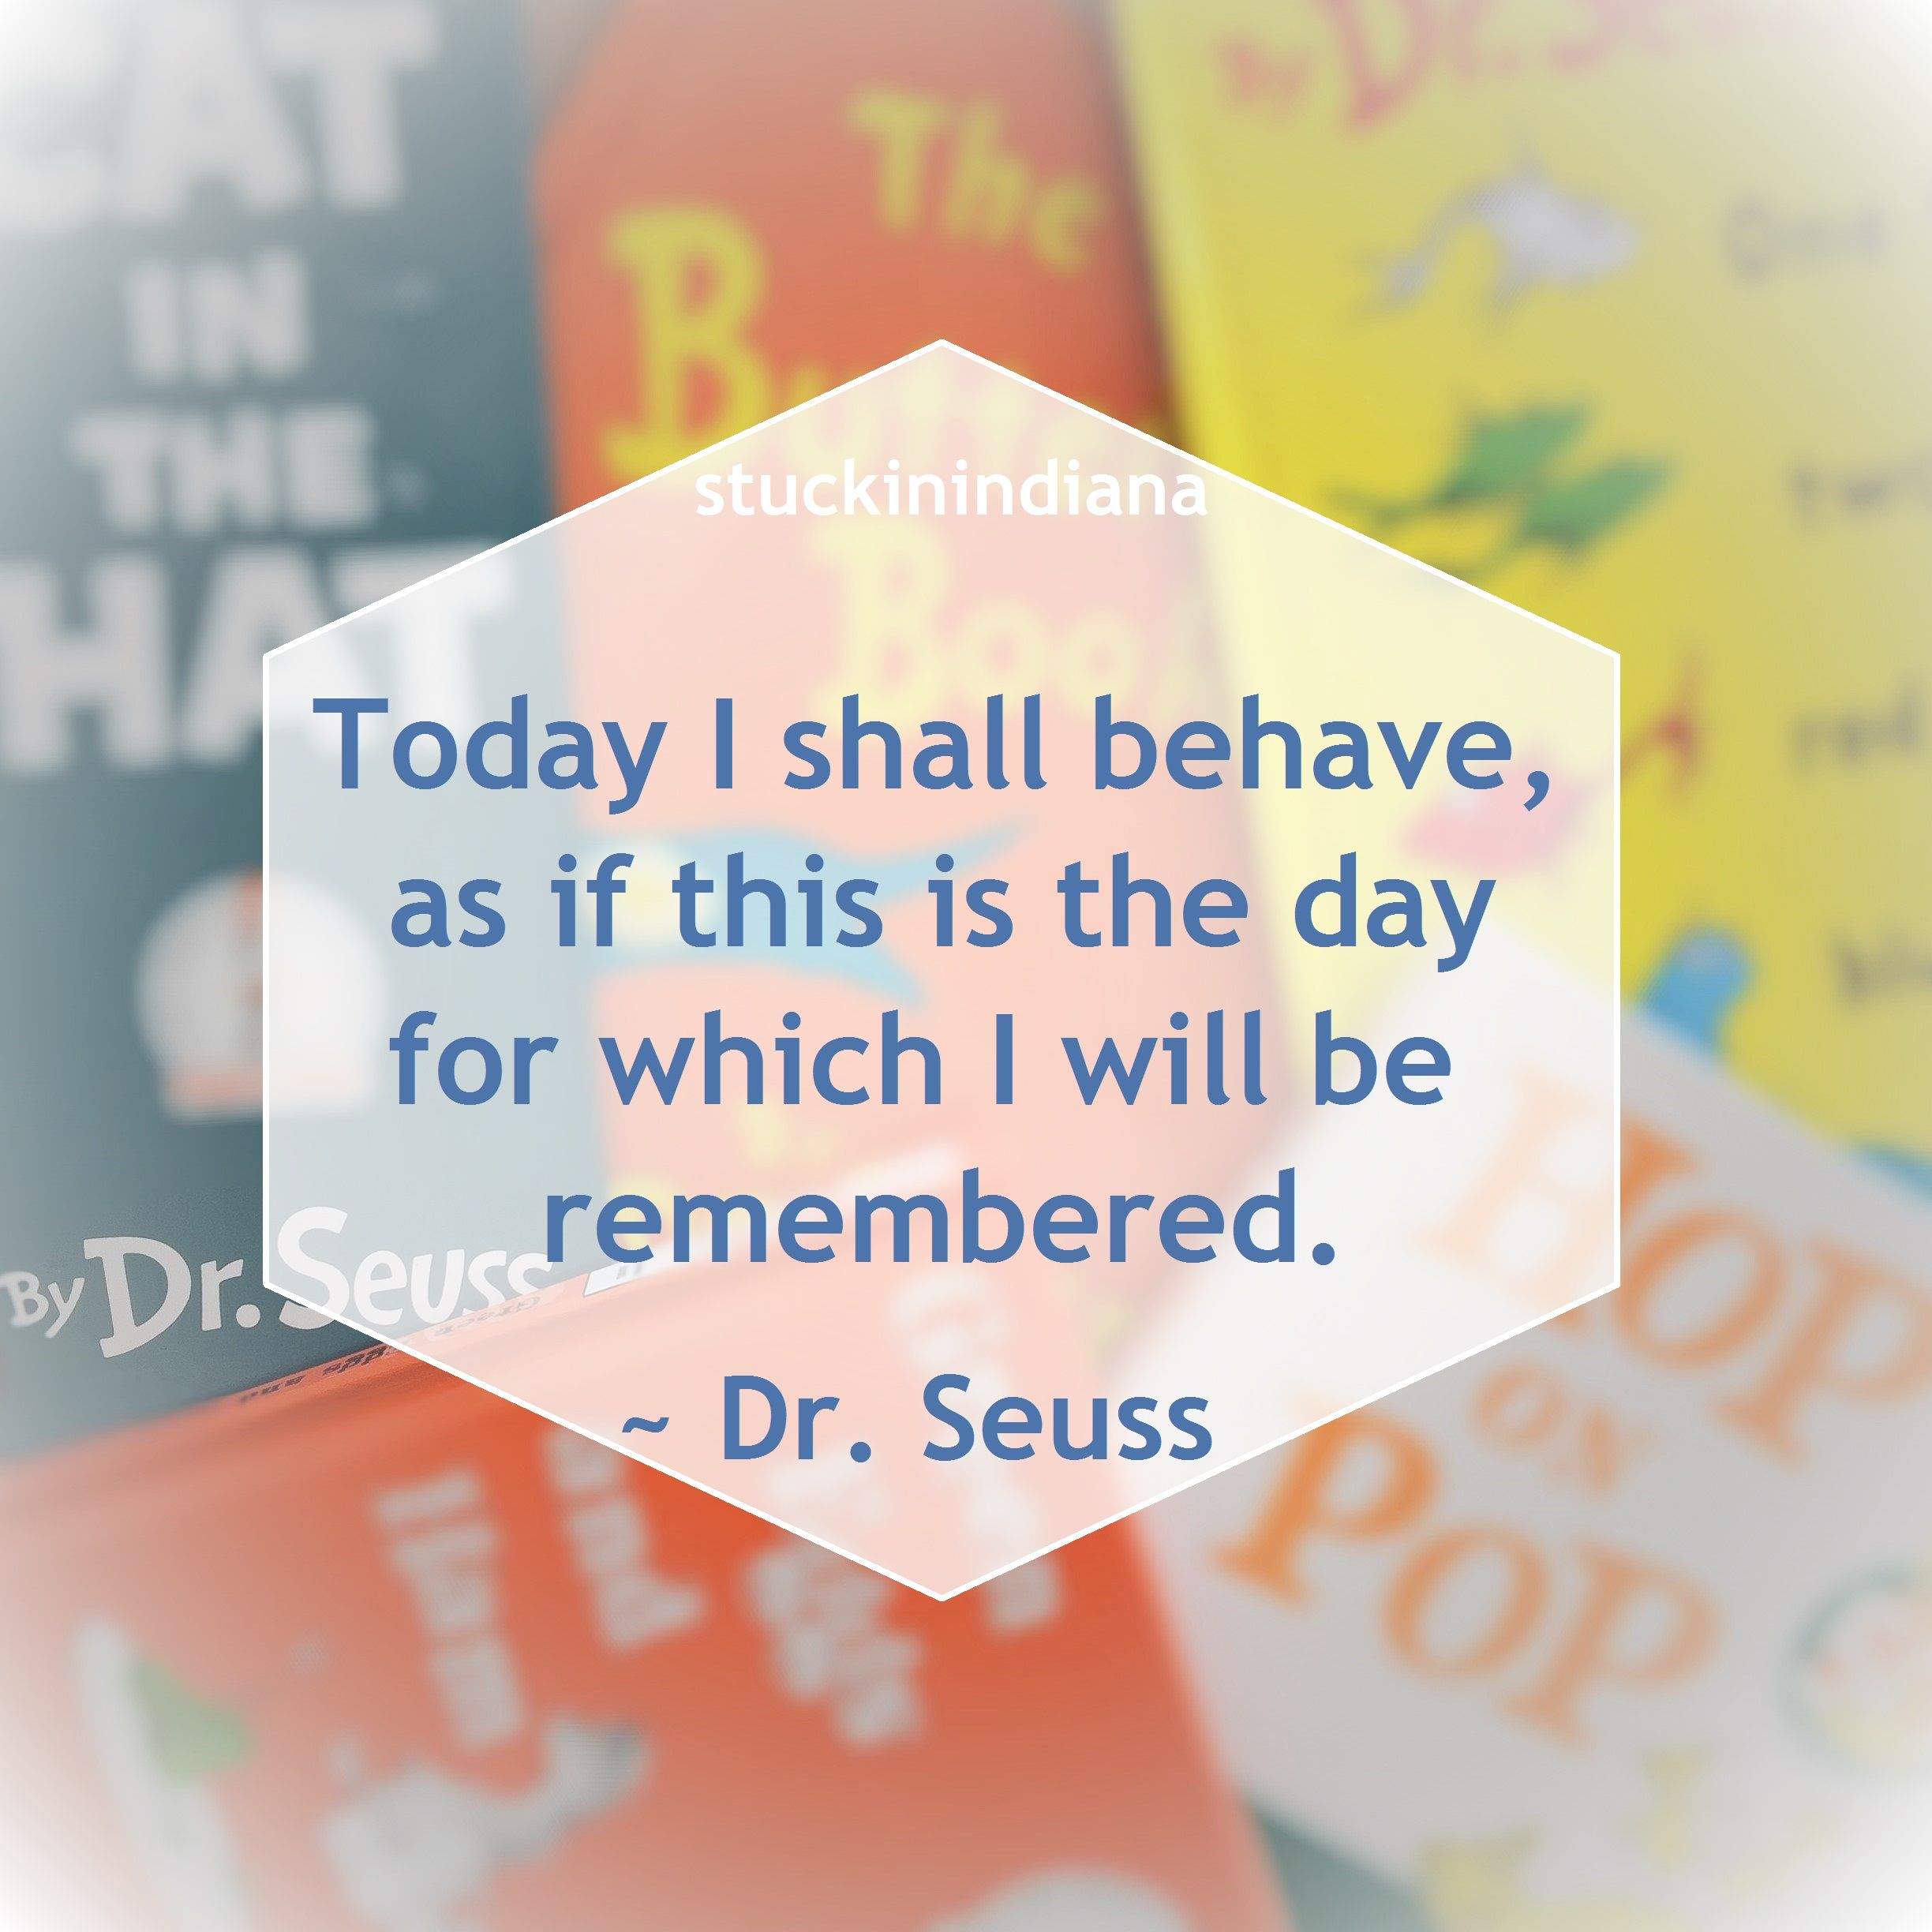 Celebrate dr seuss birthday or anyway with these free dr seuss quote - Find This Pin And More On Dr Seuss Quotes By Stuckinindiana